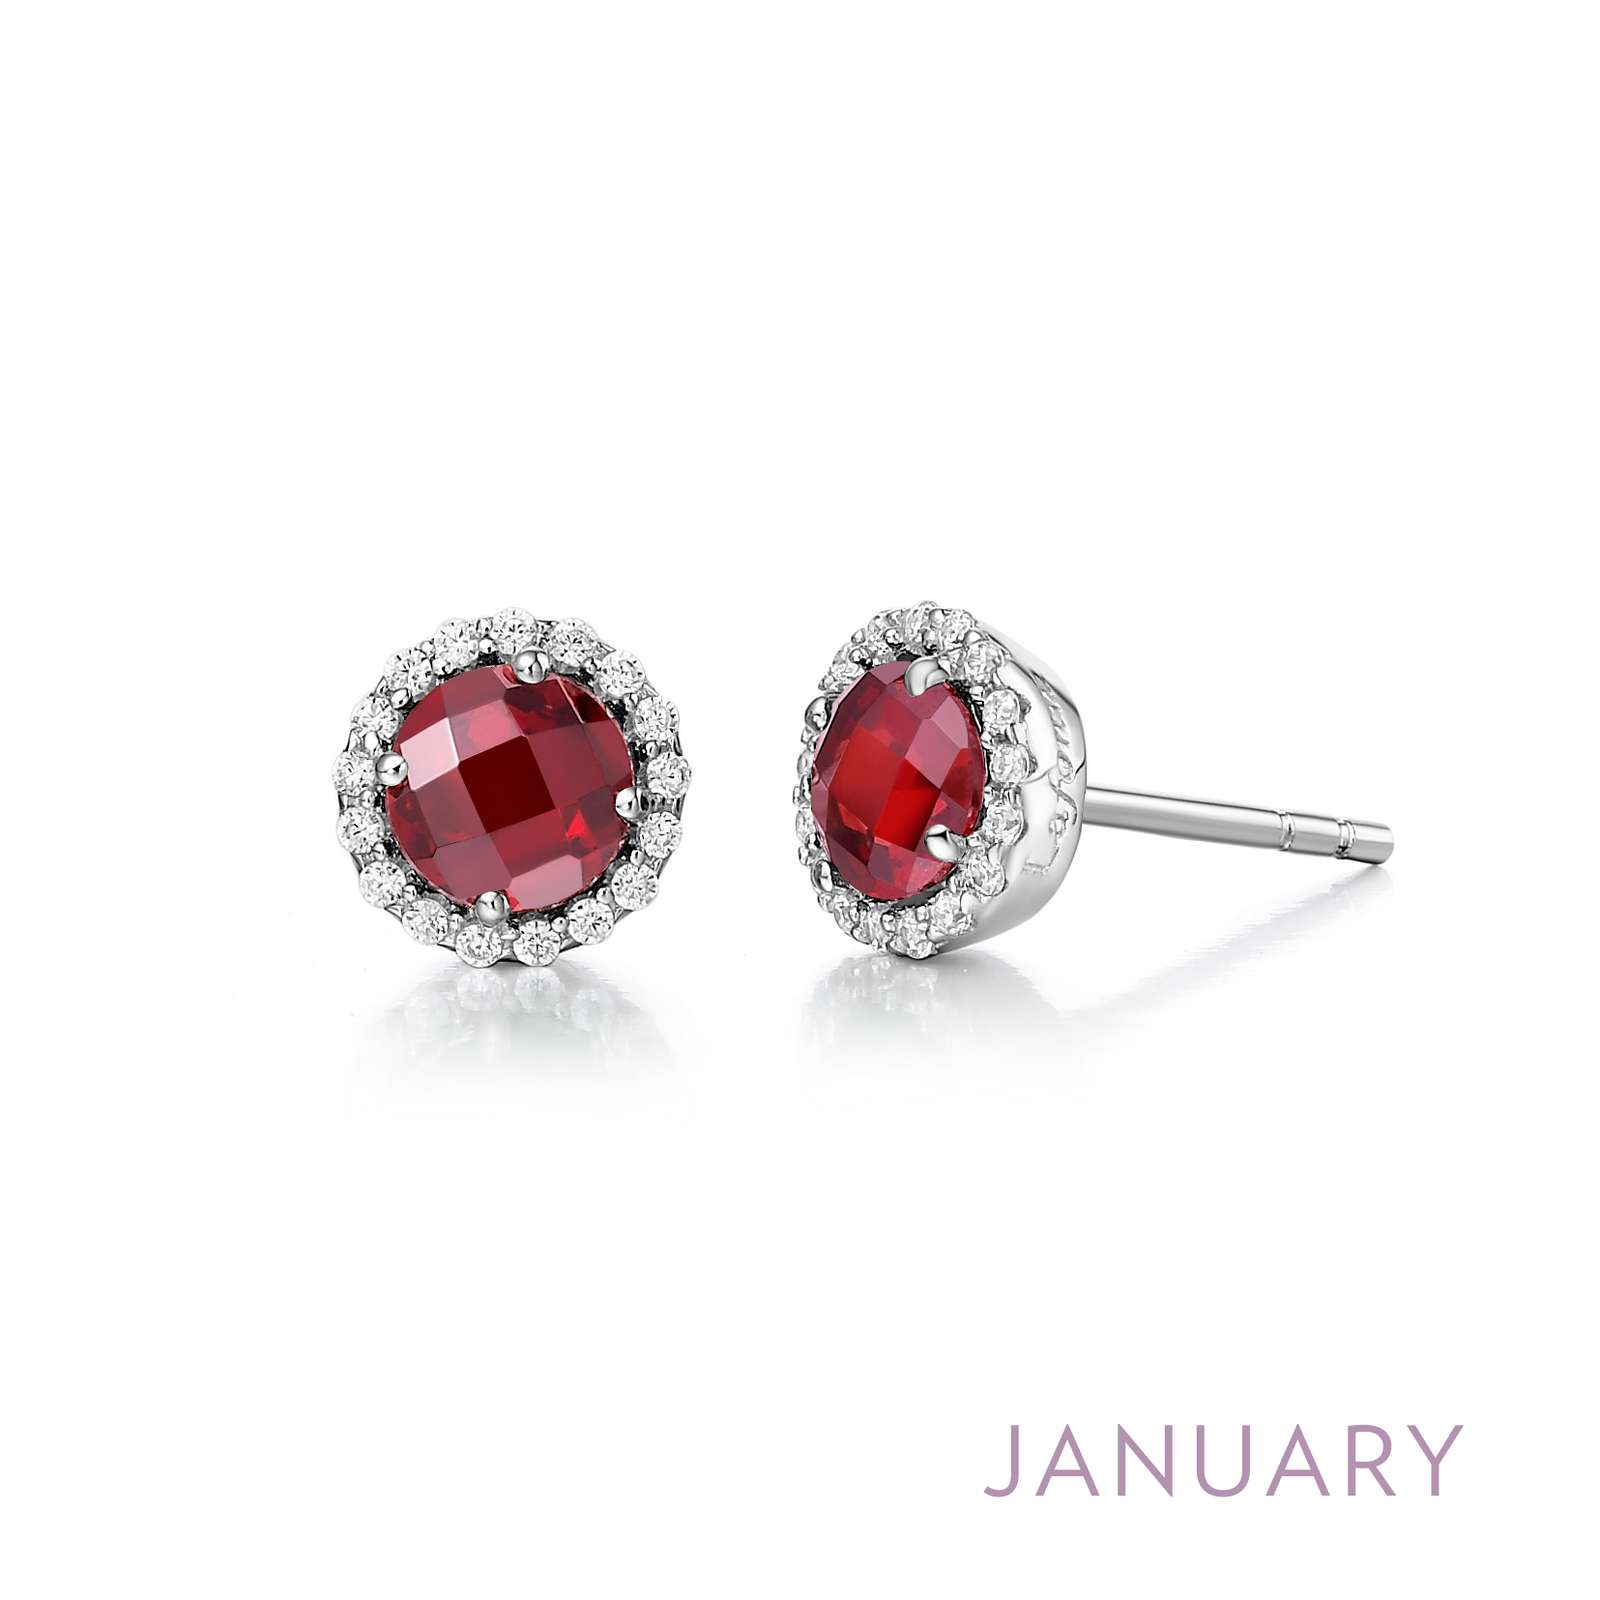 January - Garnet.  Adorn yourself with Lafonn's birthstone jewelry. These halo stud earrings are set with genuine garnets surrounded by Lafonn's signature Lassaire simulated diamonds in sterling silver bonded with platinum.